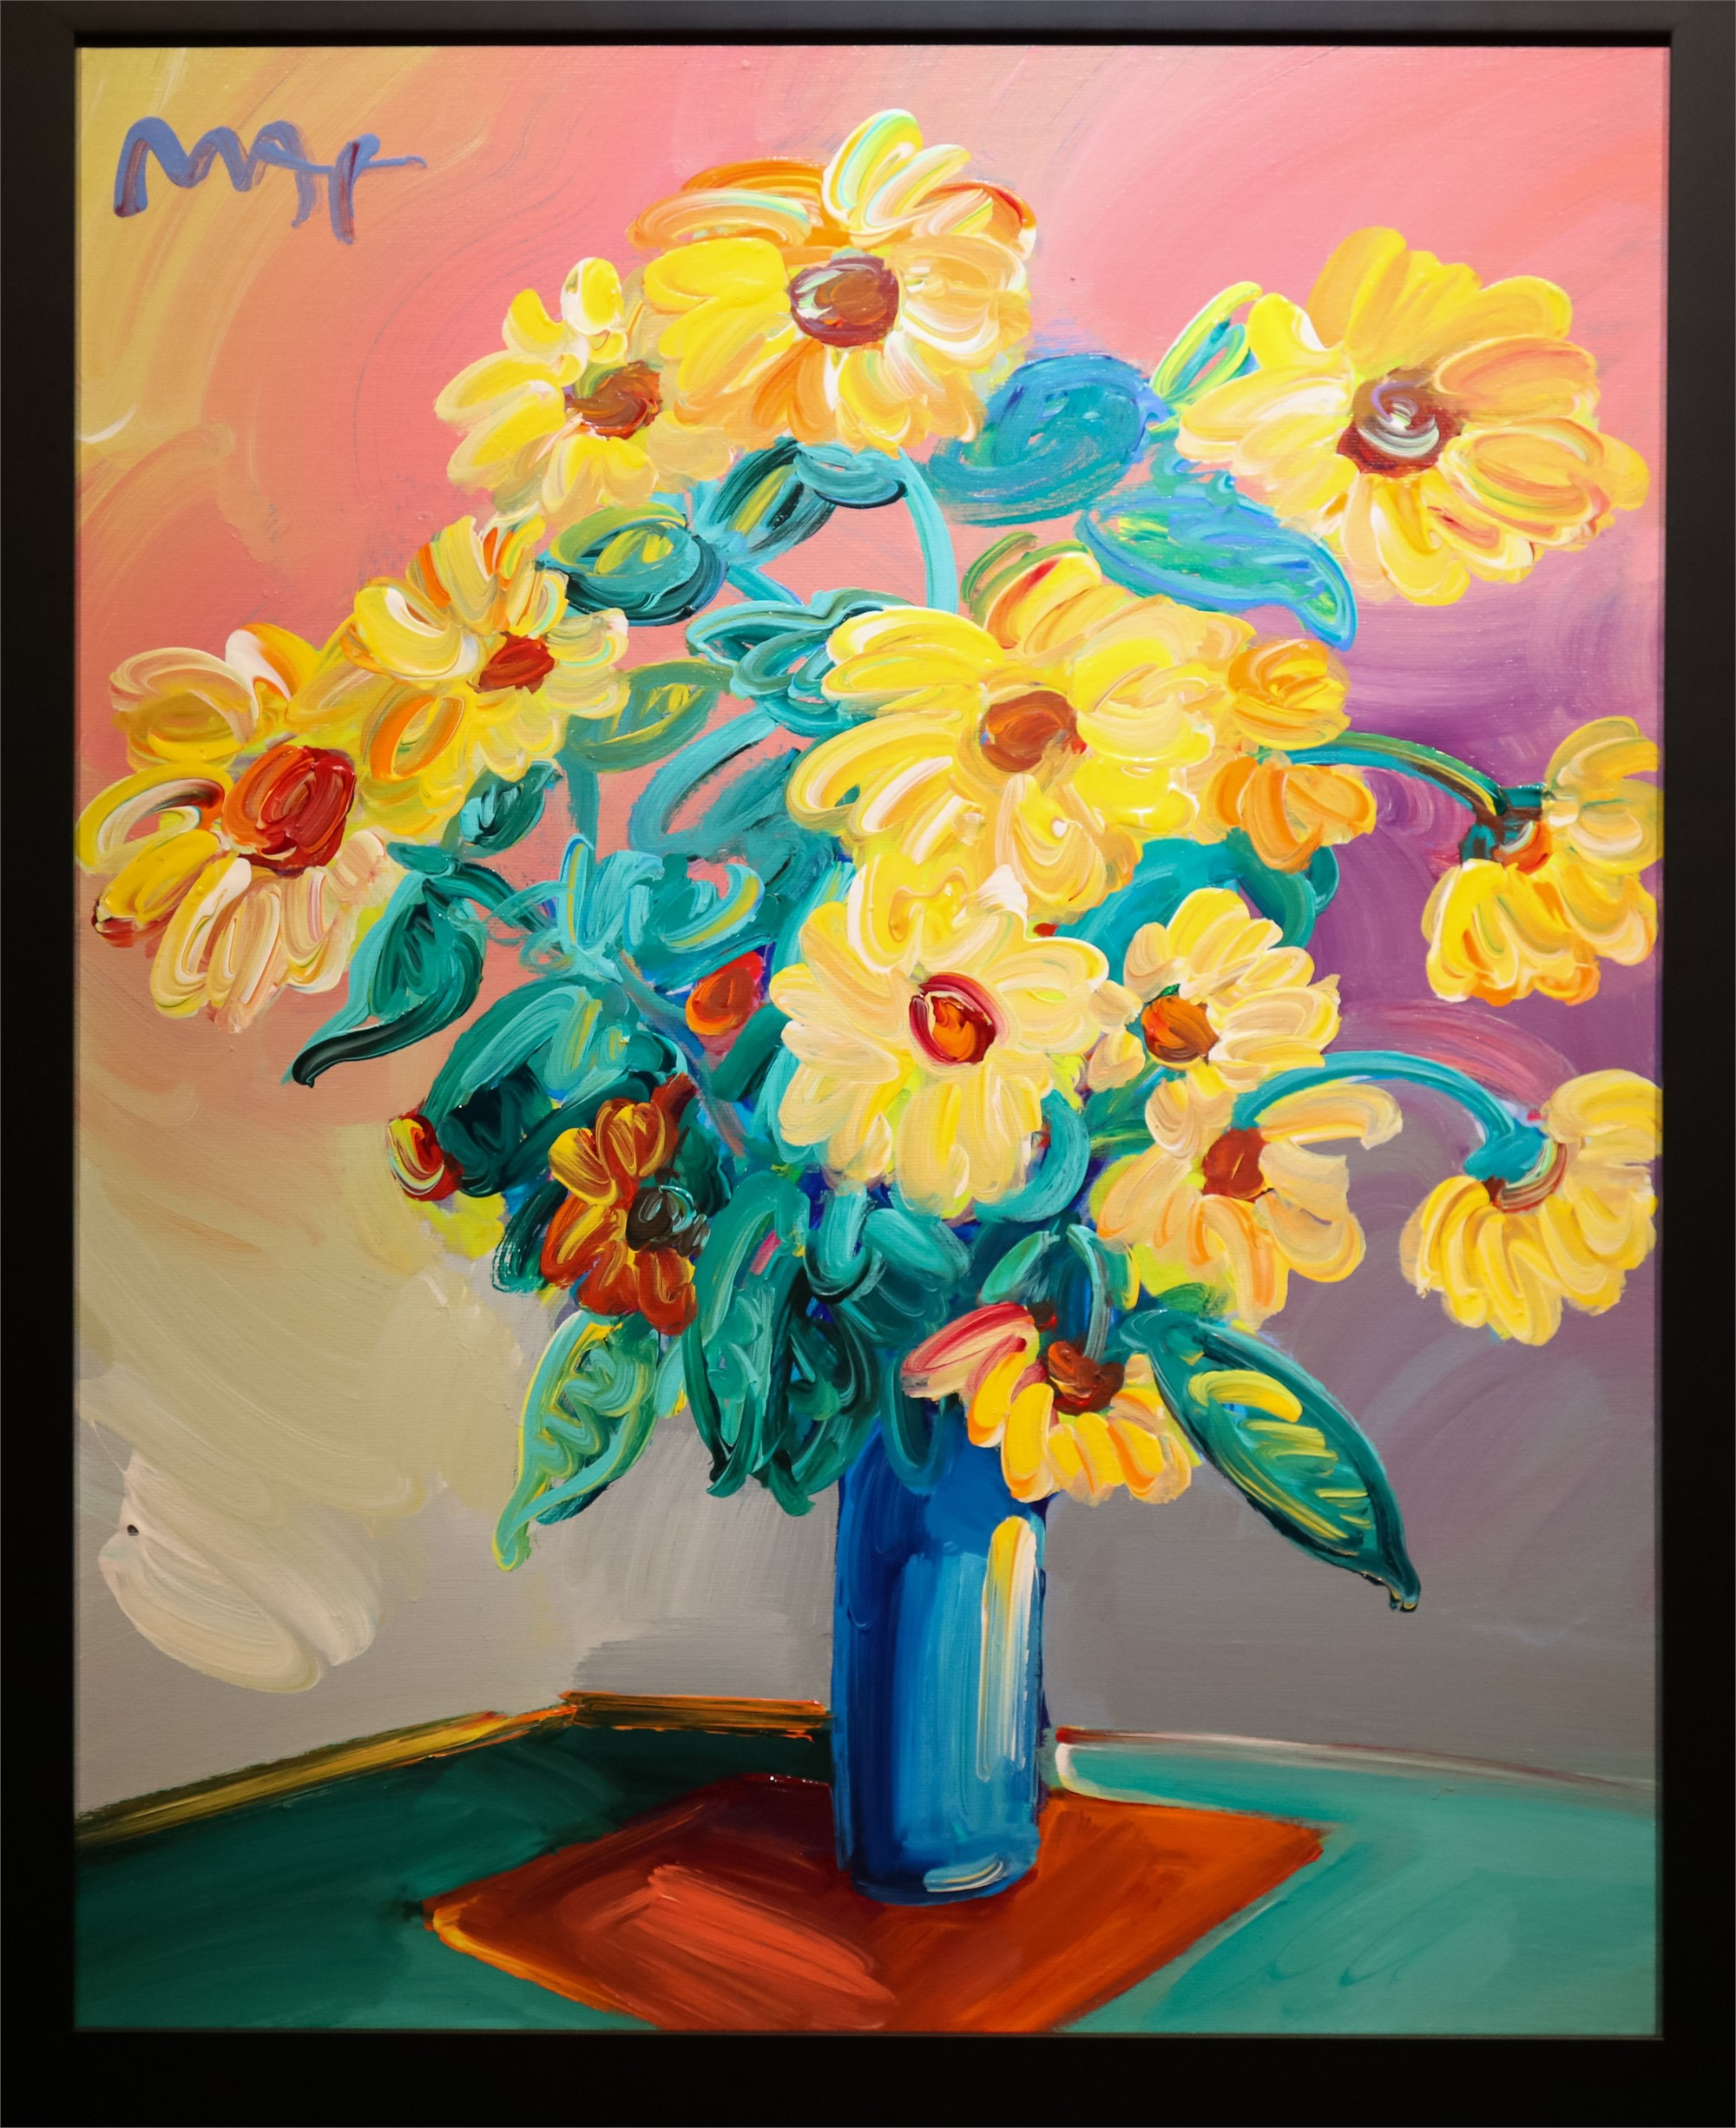 HOMAGE TO MONET: SUNFLOWERS by Peter Max